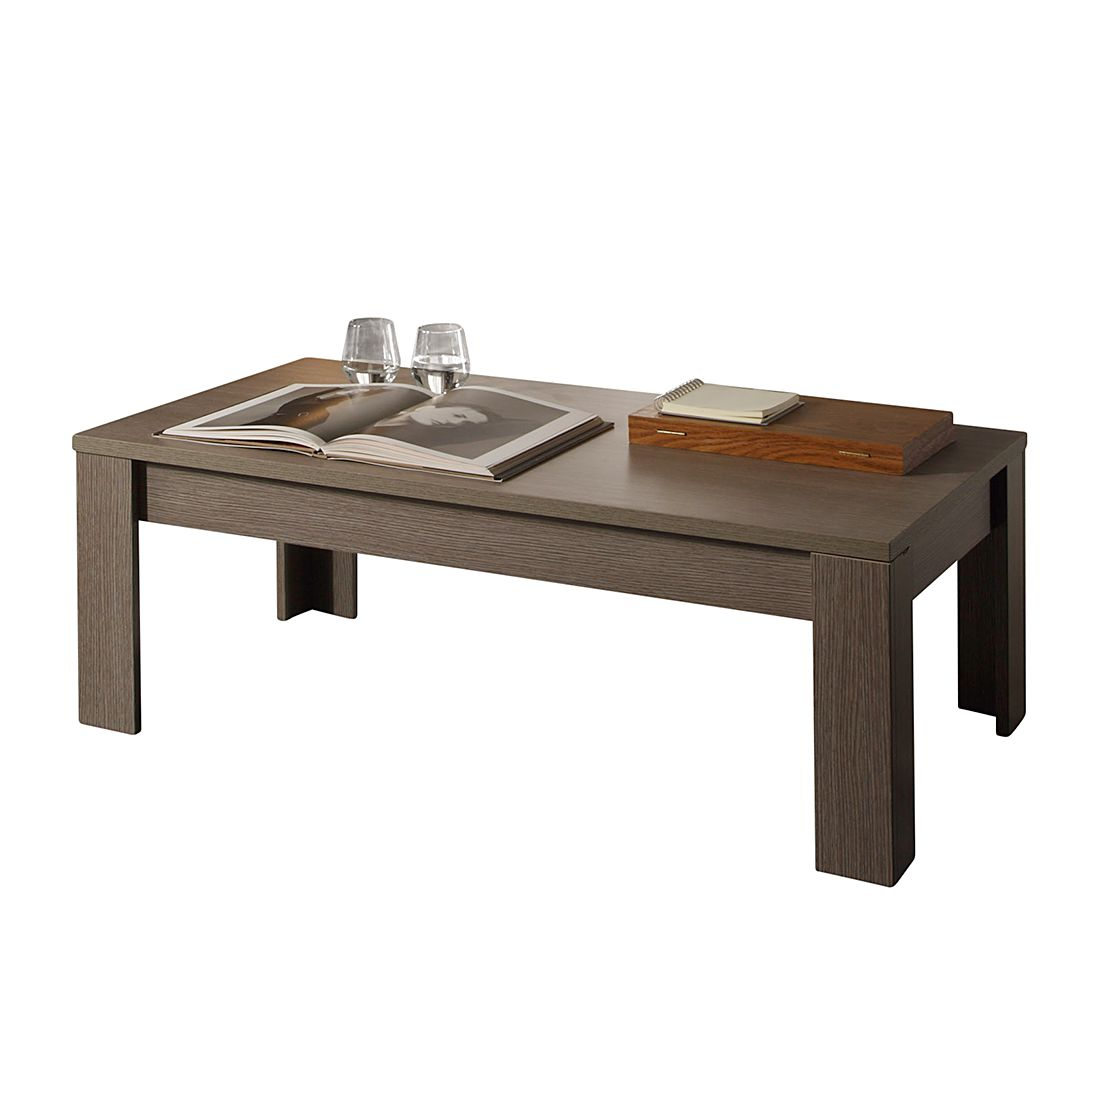 Table basse Gladiolo - Chêne gris, Lc Mobili